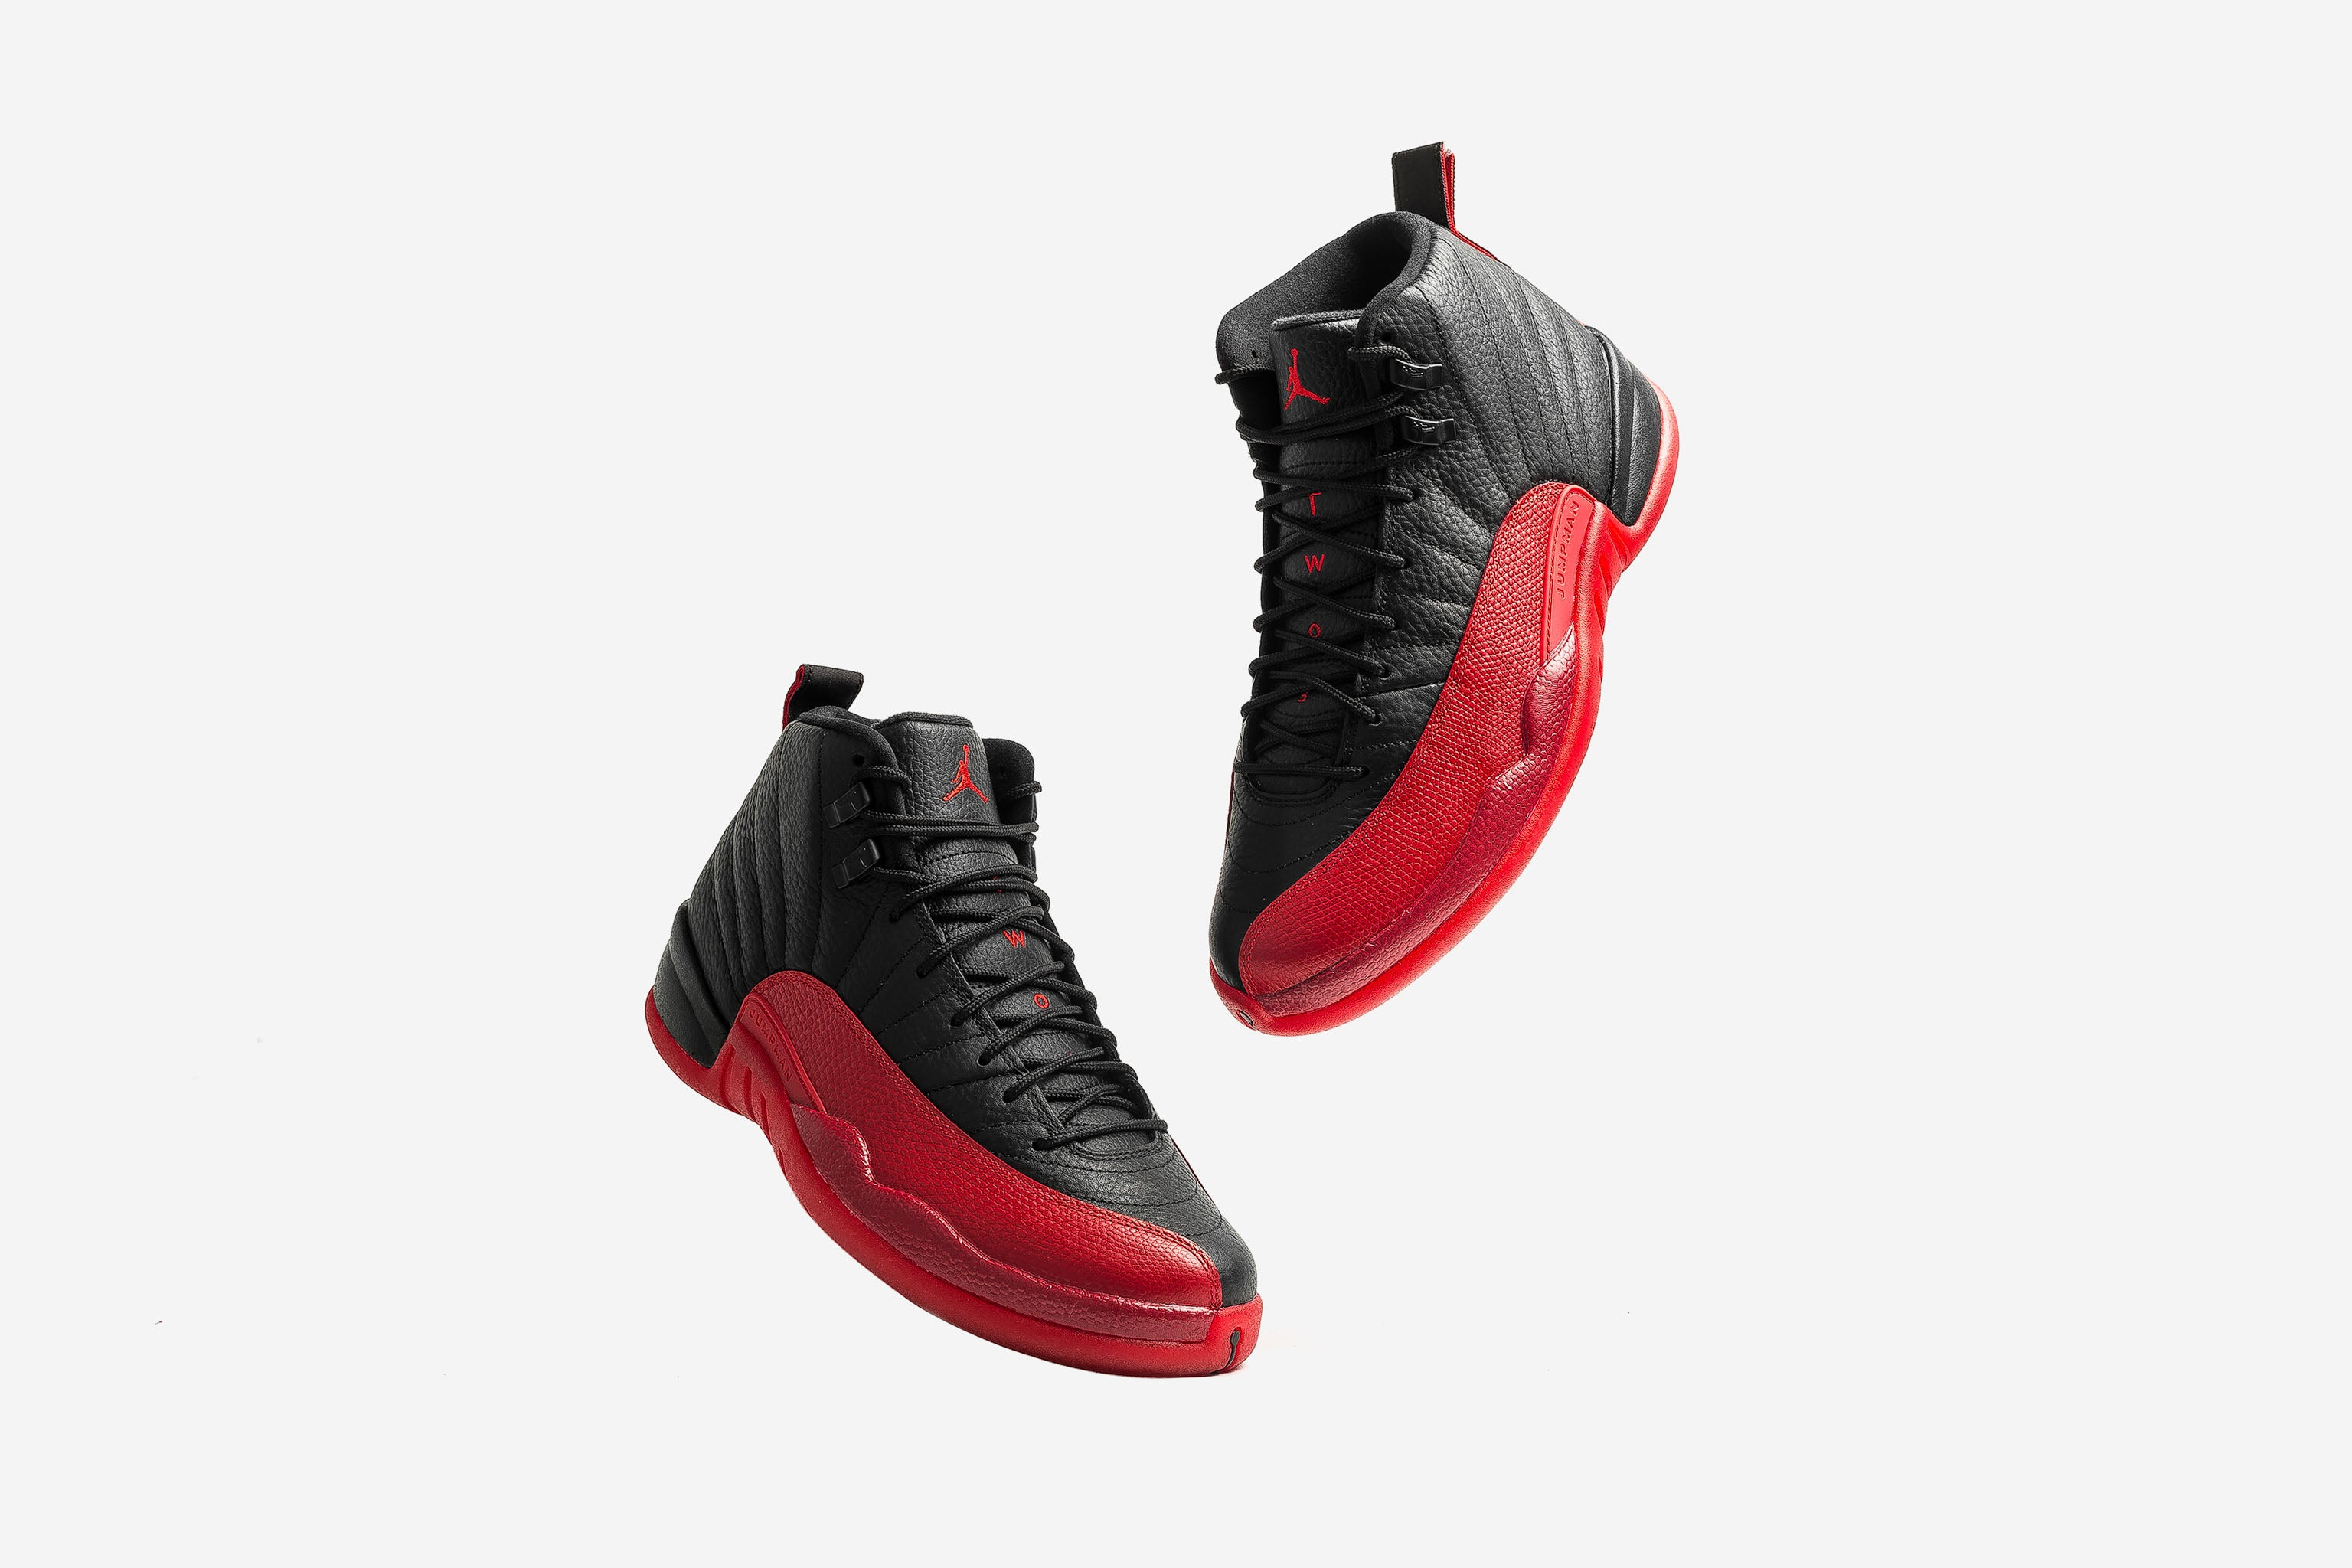 a31ed879477 ... order originally released in 1997 the air jordan 12 has returned in  true og fashion.